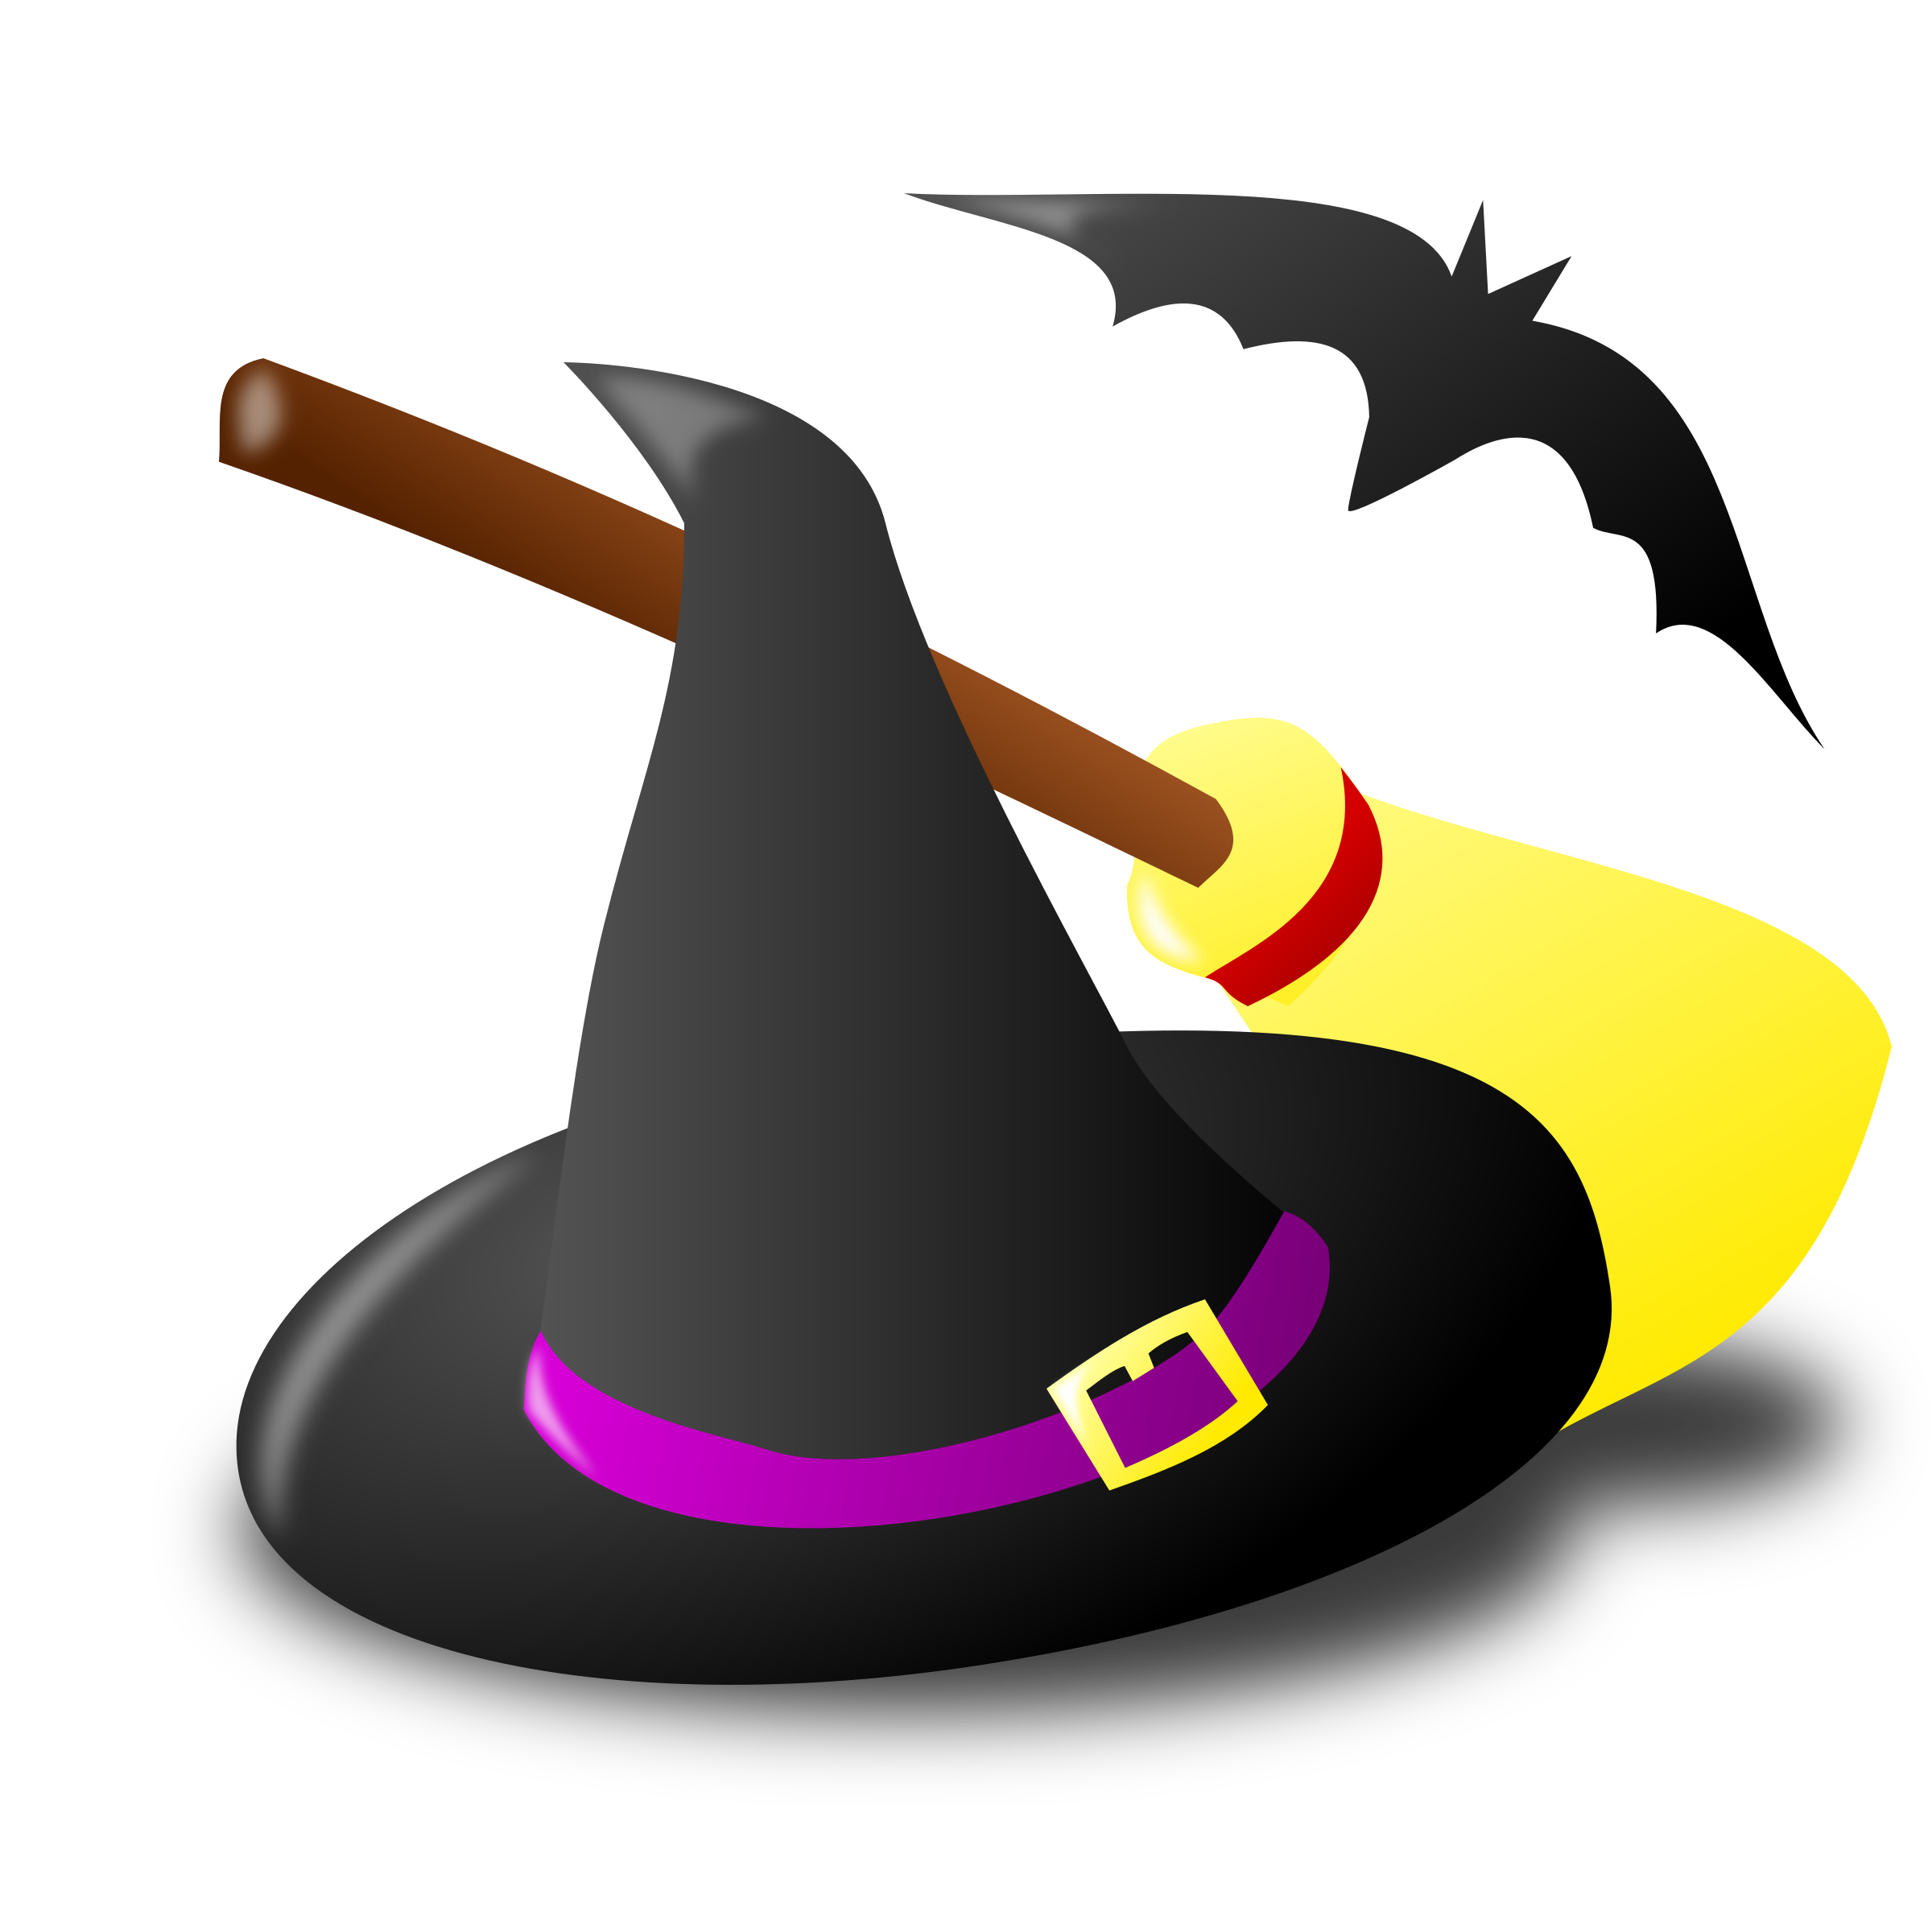 Halloween boo clipart png library download Spooky Halloween Stickers - Boo! by Levi Gemmell png library download